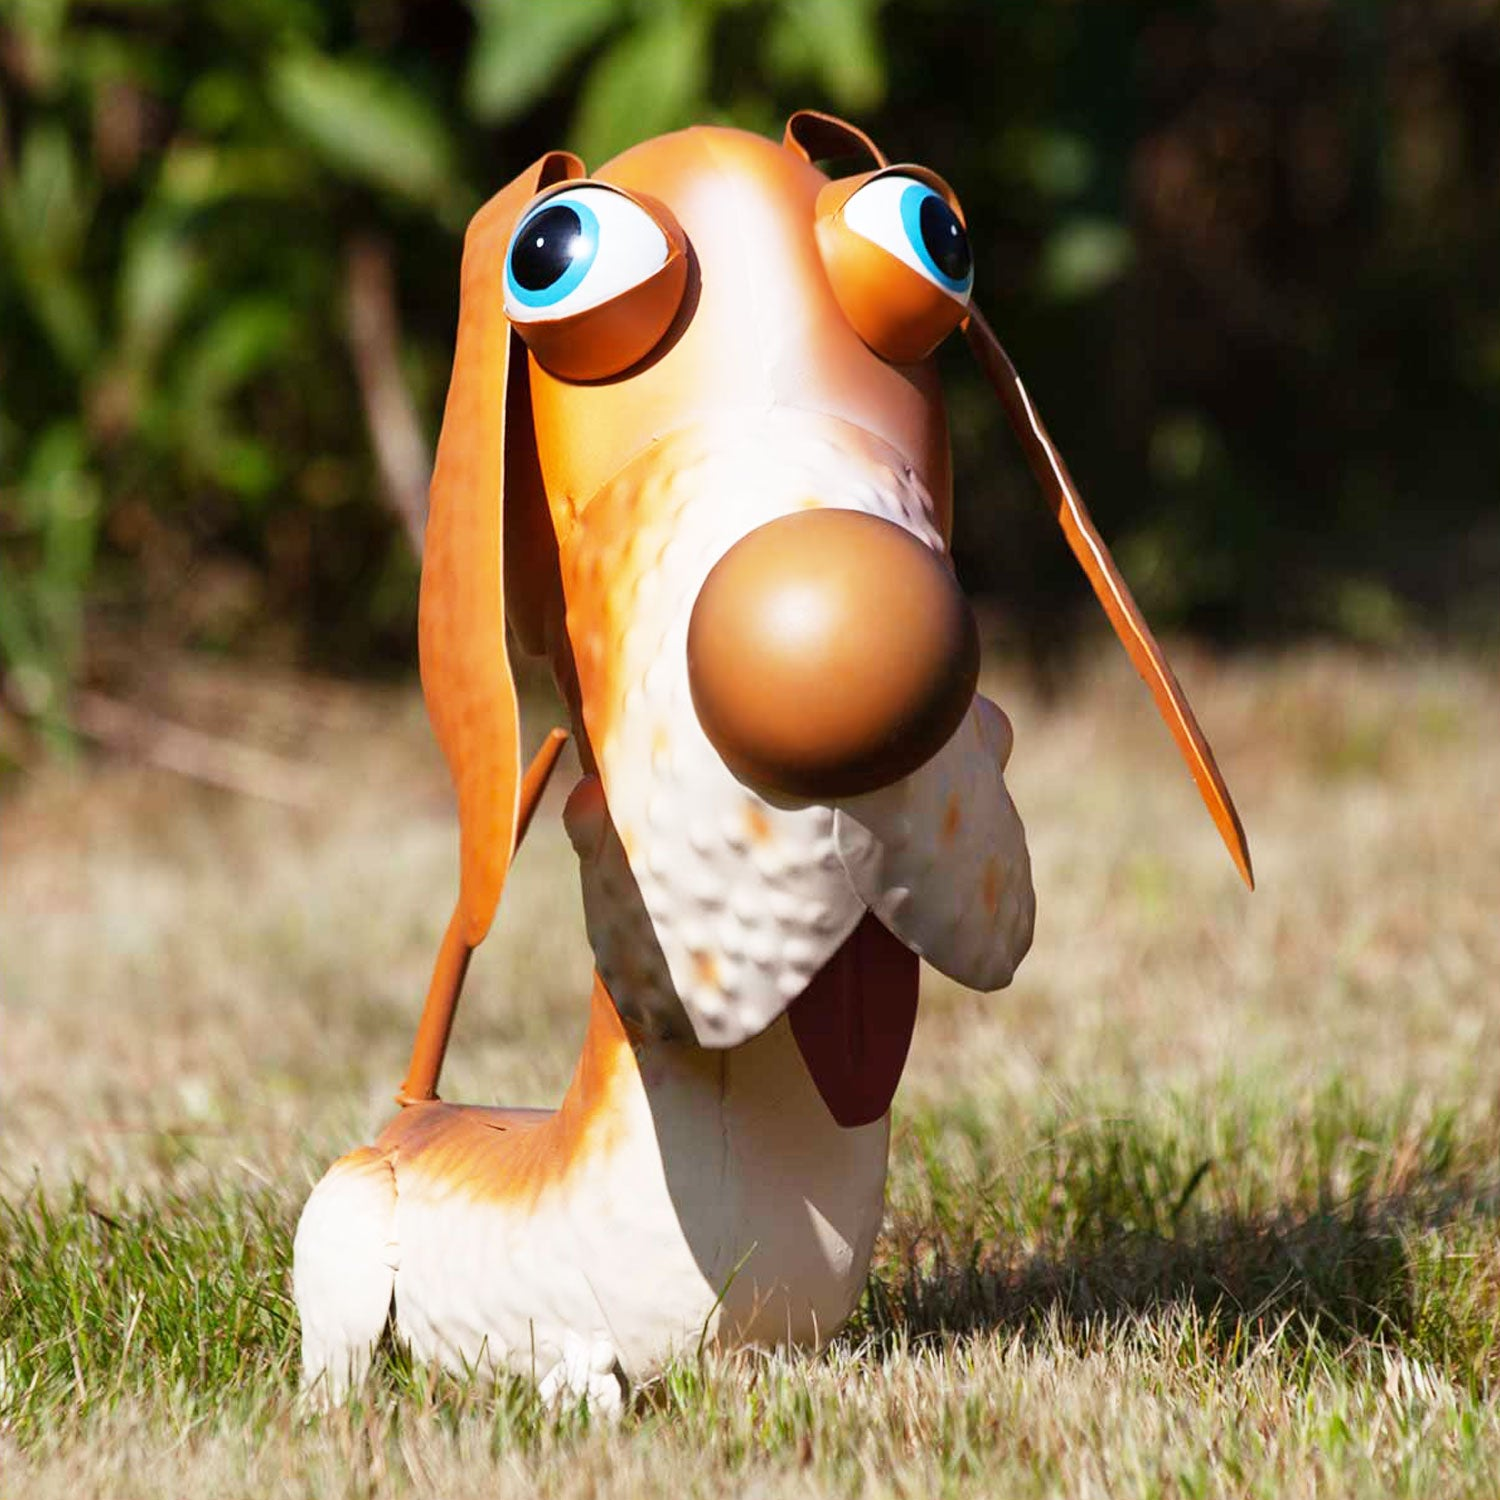 Dog Lover Gifts available at Dog Krazy Gifts – Bobble Buddies Basset, available at www.dogkrazygifts.co.uk